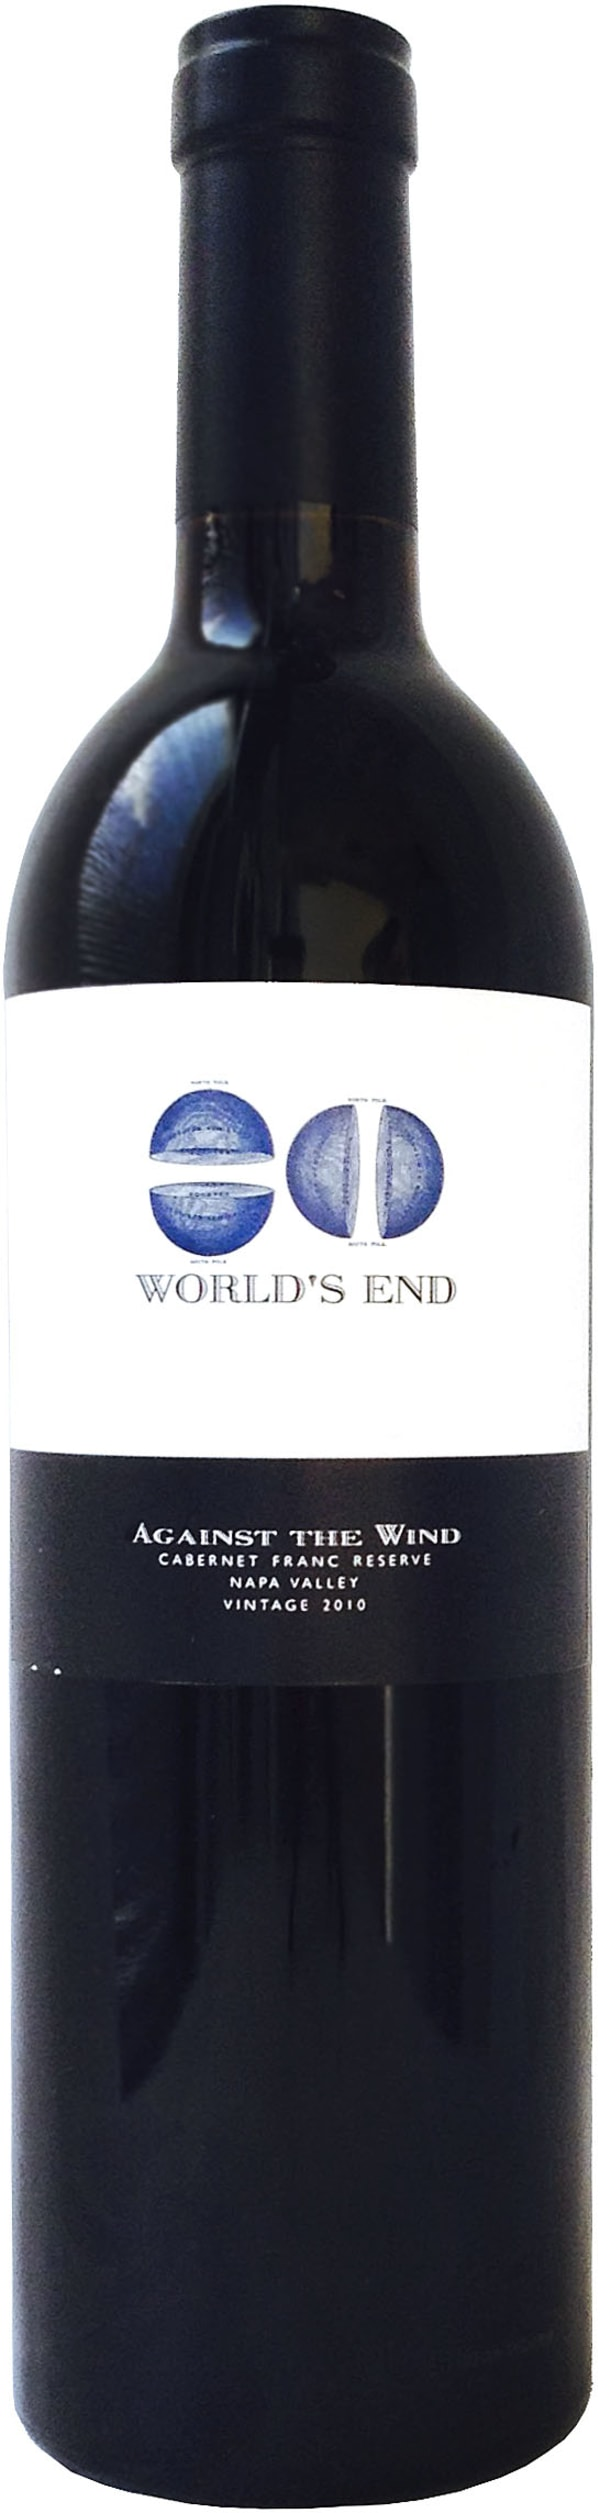 Worlds End Against the Wind Cabernet Franc Reserve 2010 2010